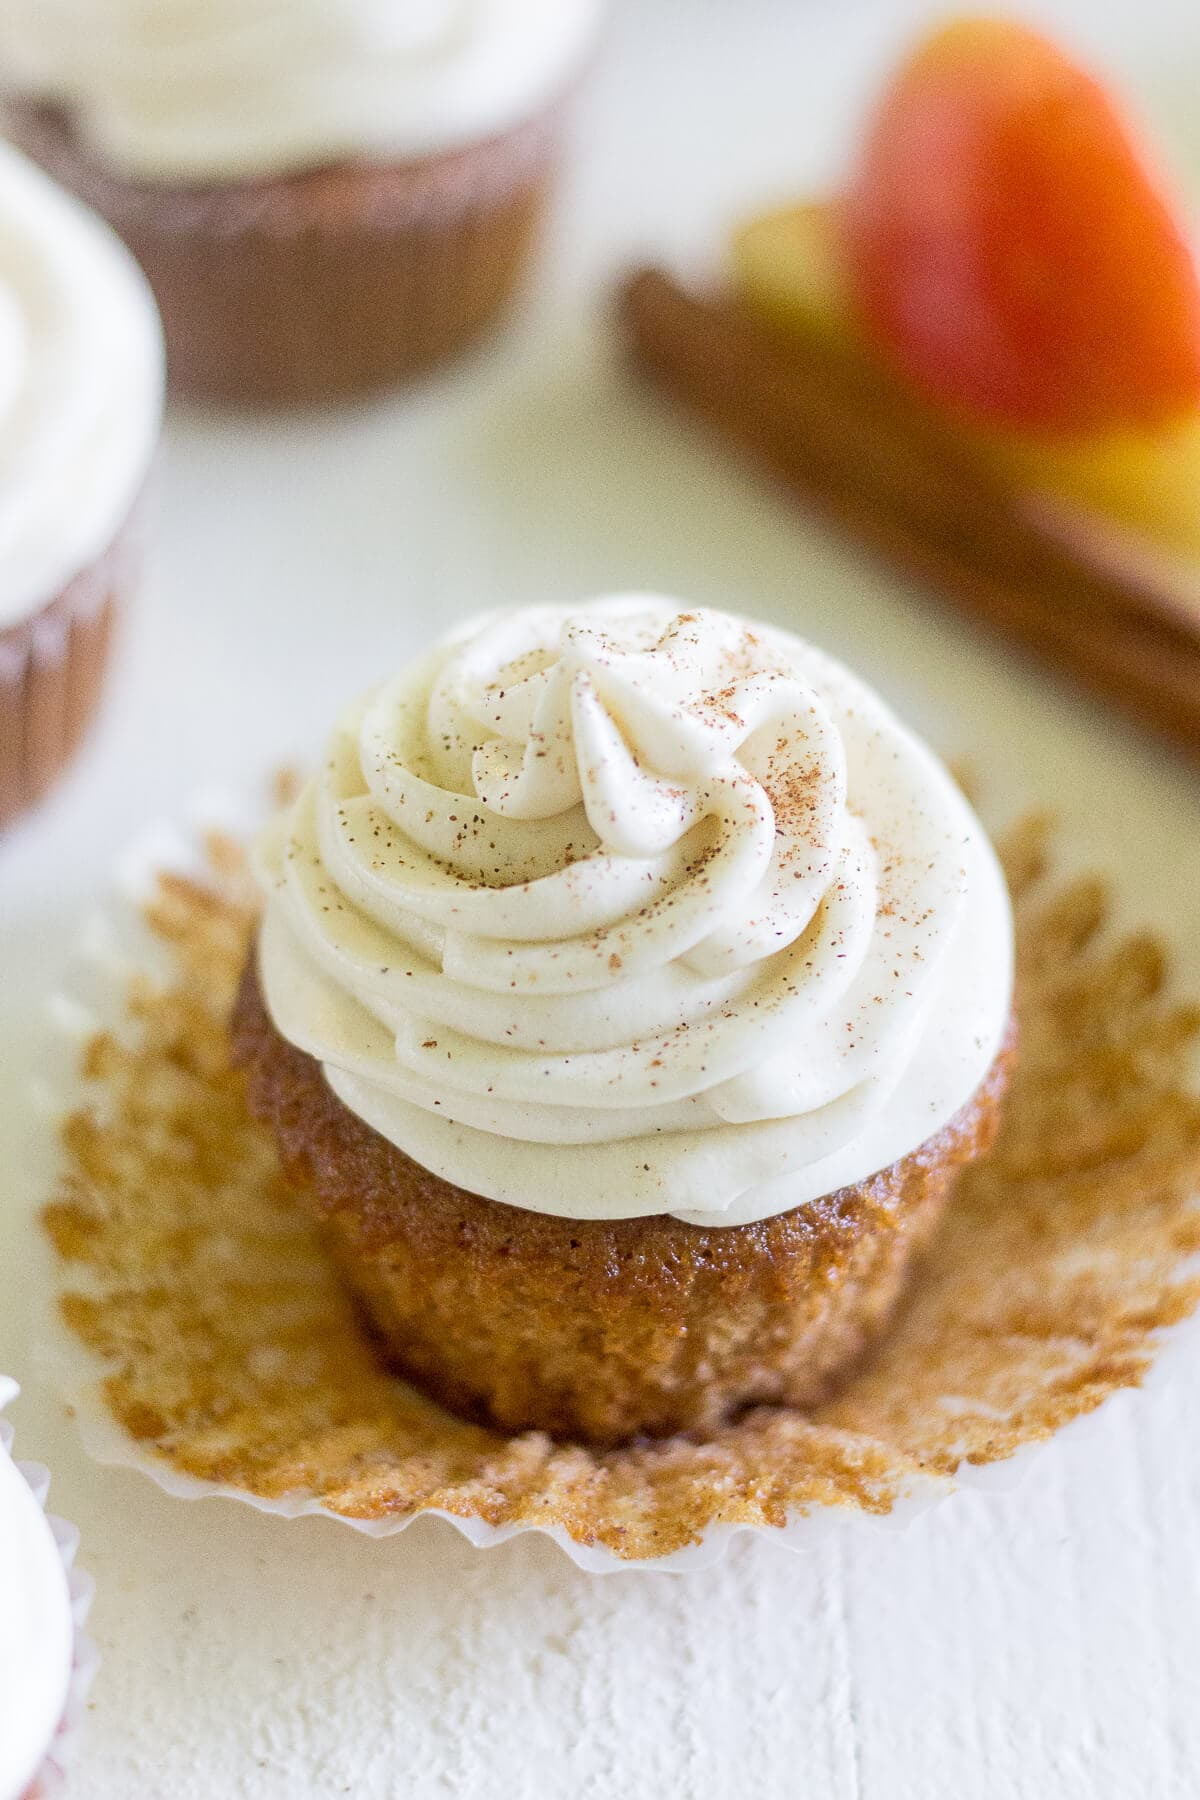 Apple cider cupcakes are a light and fluffy dessert just right for fall! The cupcake is made with apple cider and cinnamon and topped with a smooth cream cheese frosting.